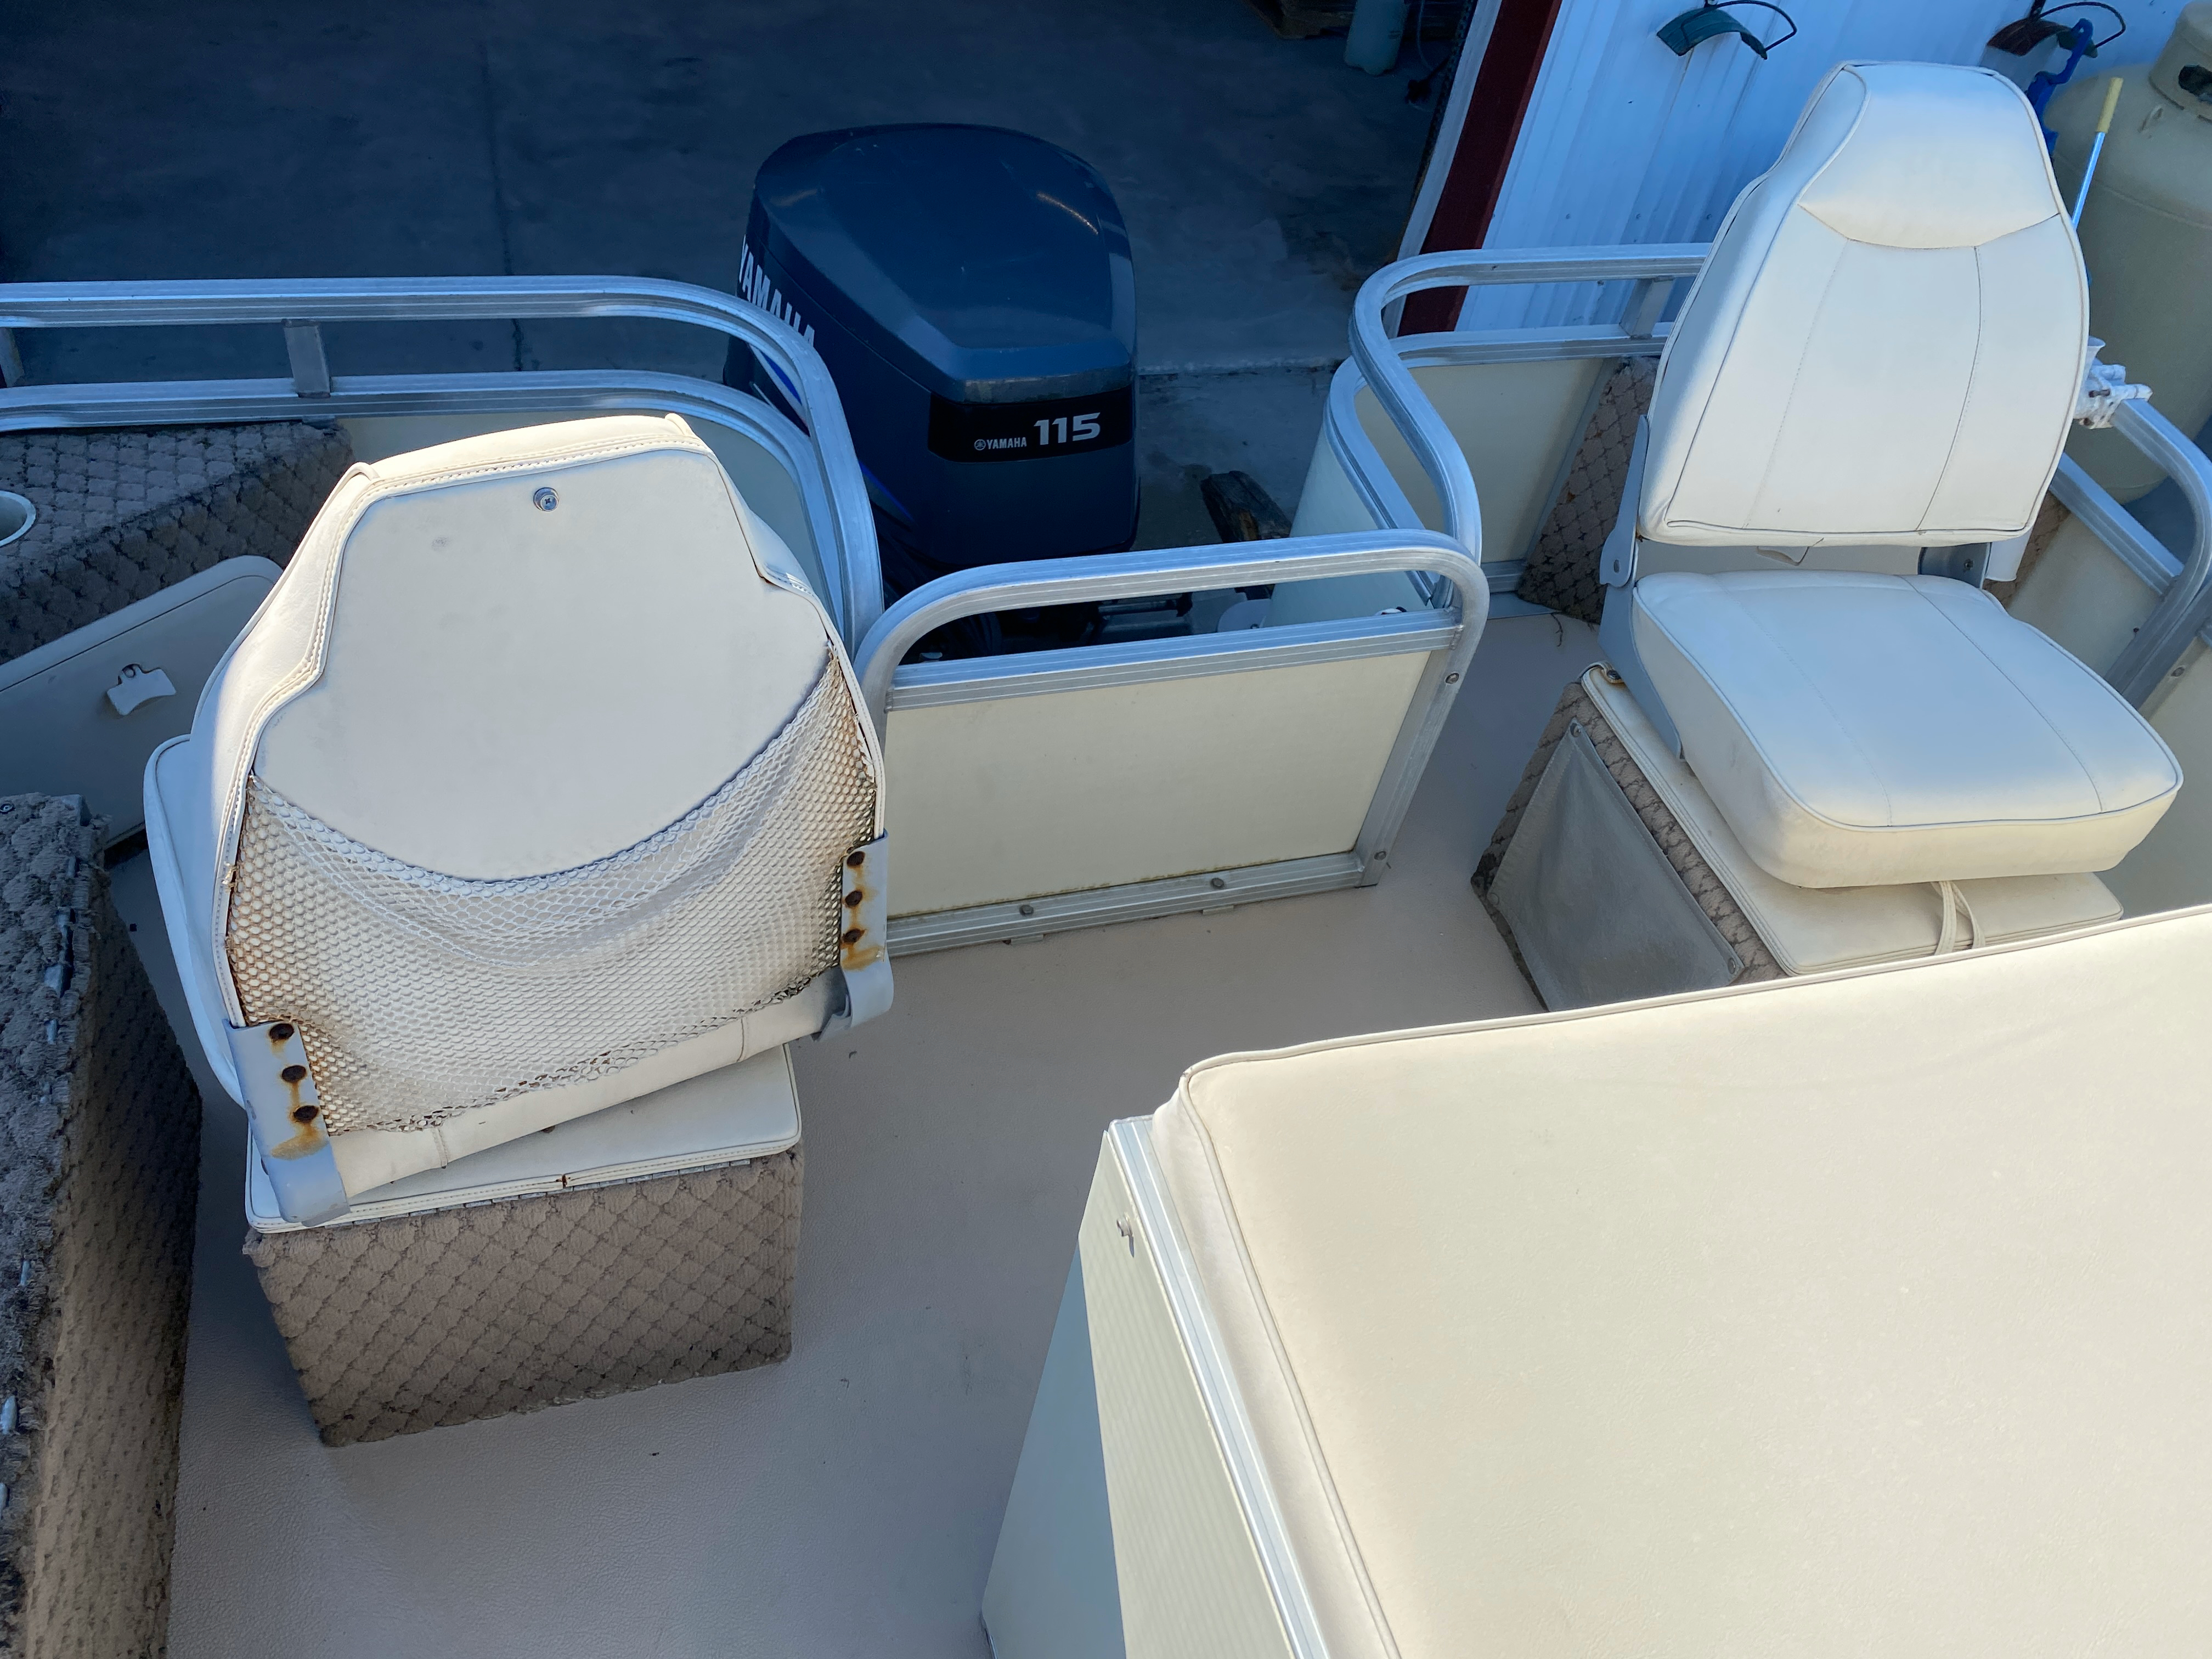 2002 Tahoe boat for sale, model of the boat is Grand Tahoe FNF & Image # 4 of 10